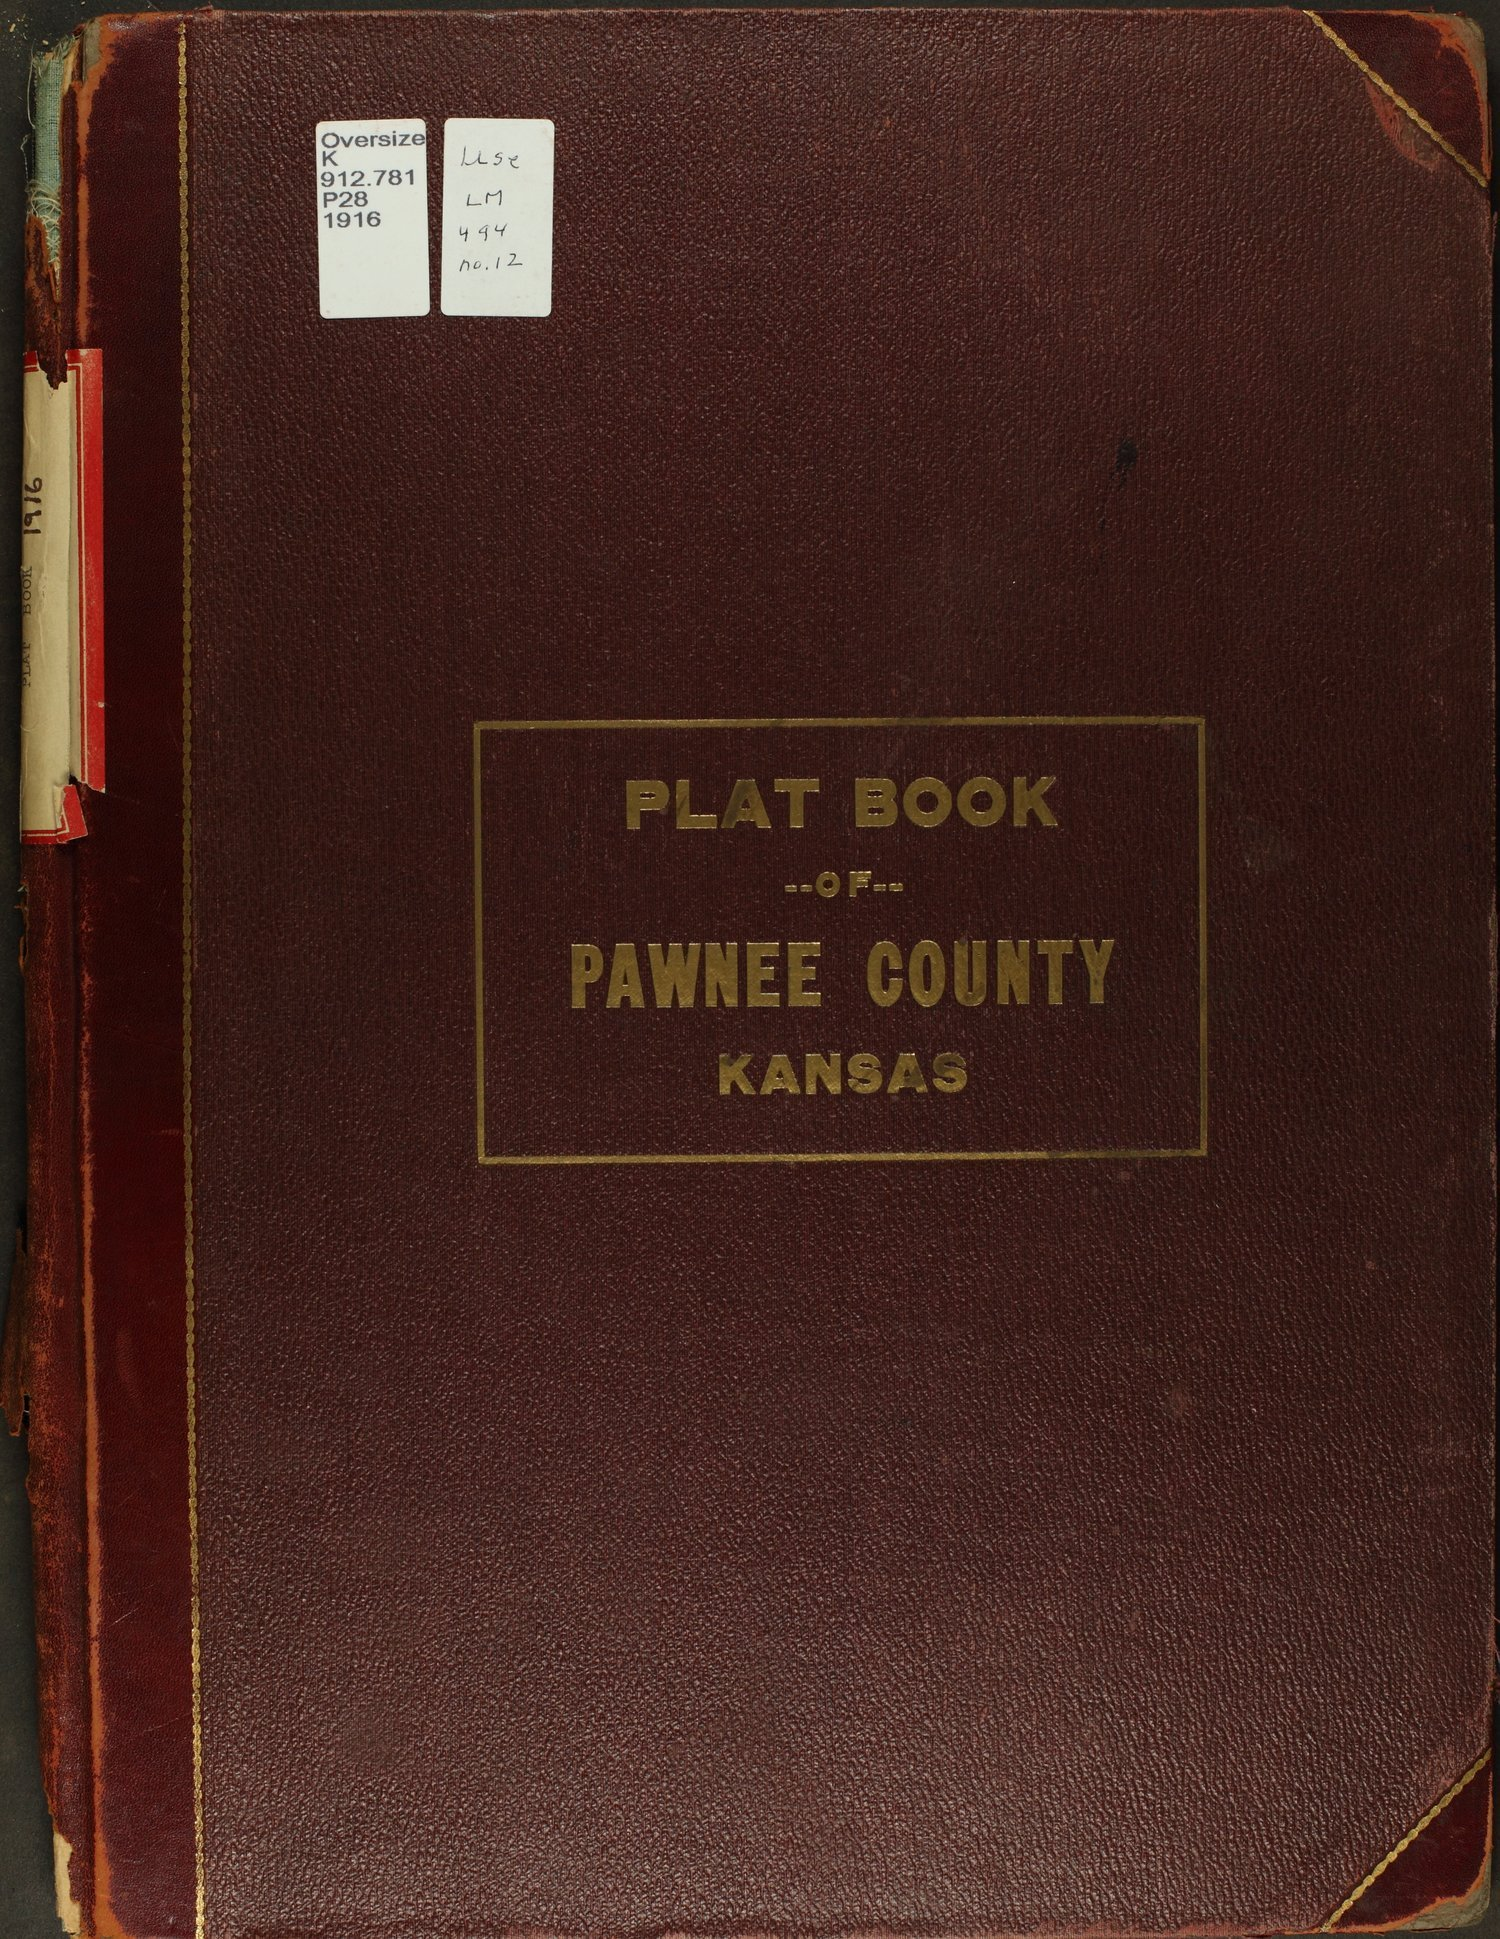 Atlas and plat book of Pawnee County, Kansas - Front Cover